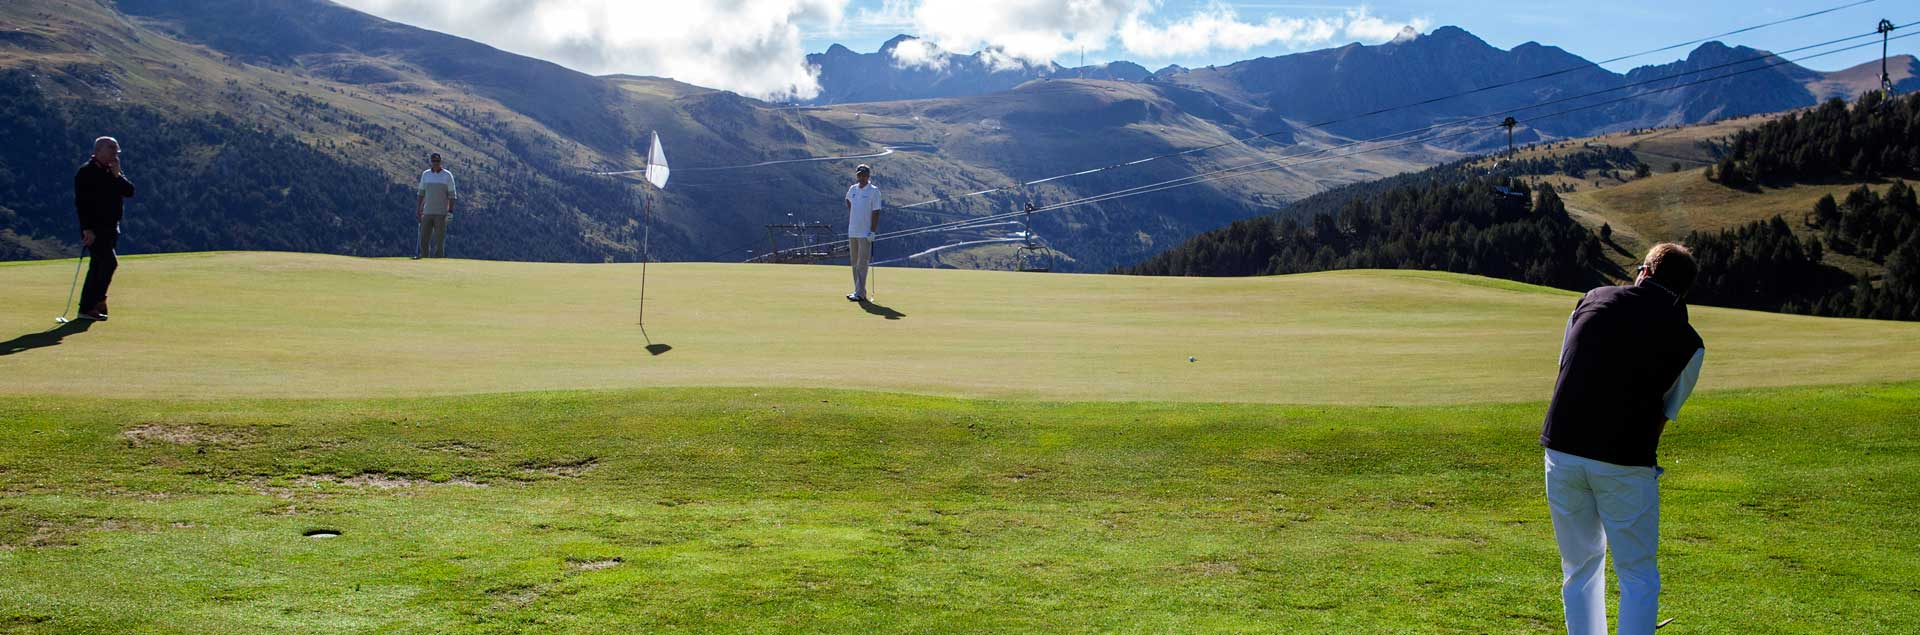 camp de golf a lestiu a Andorra